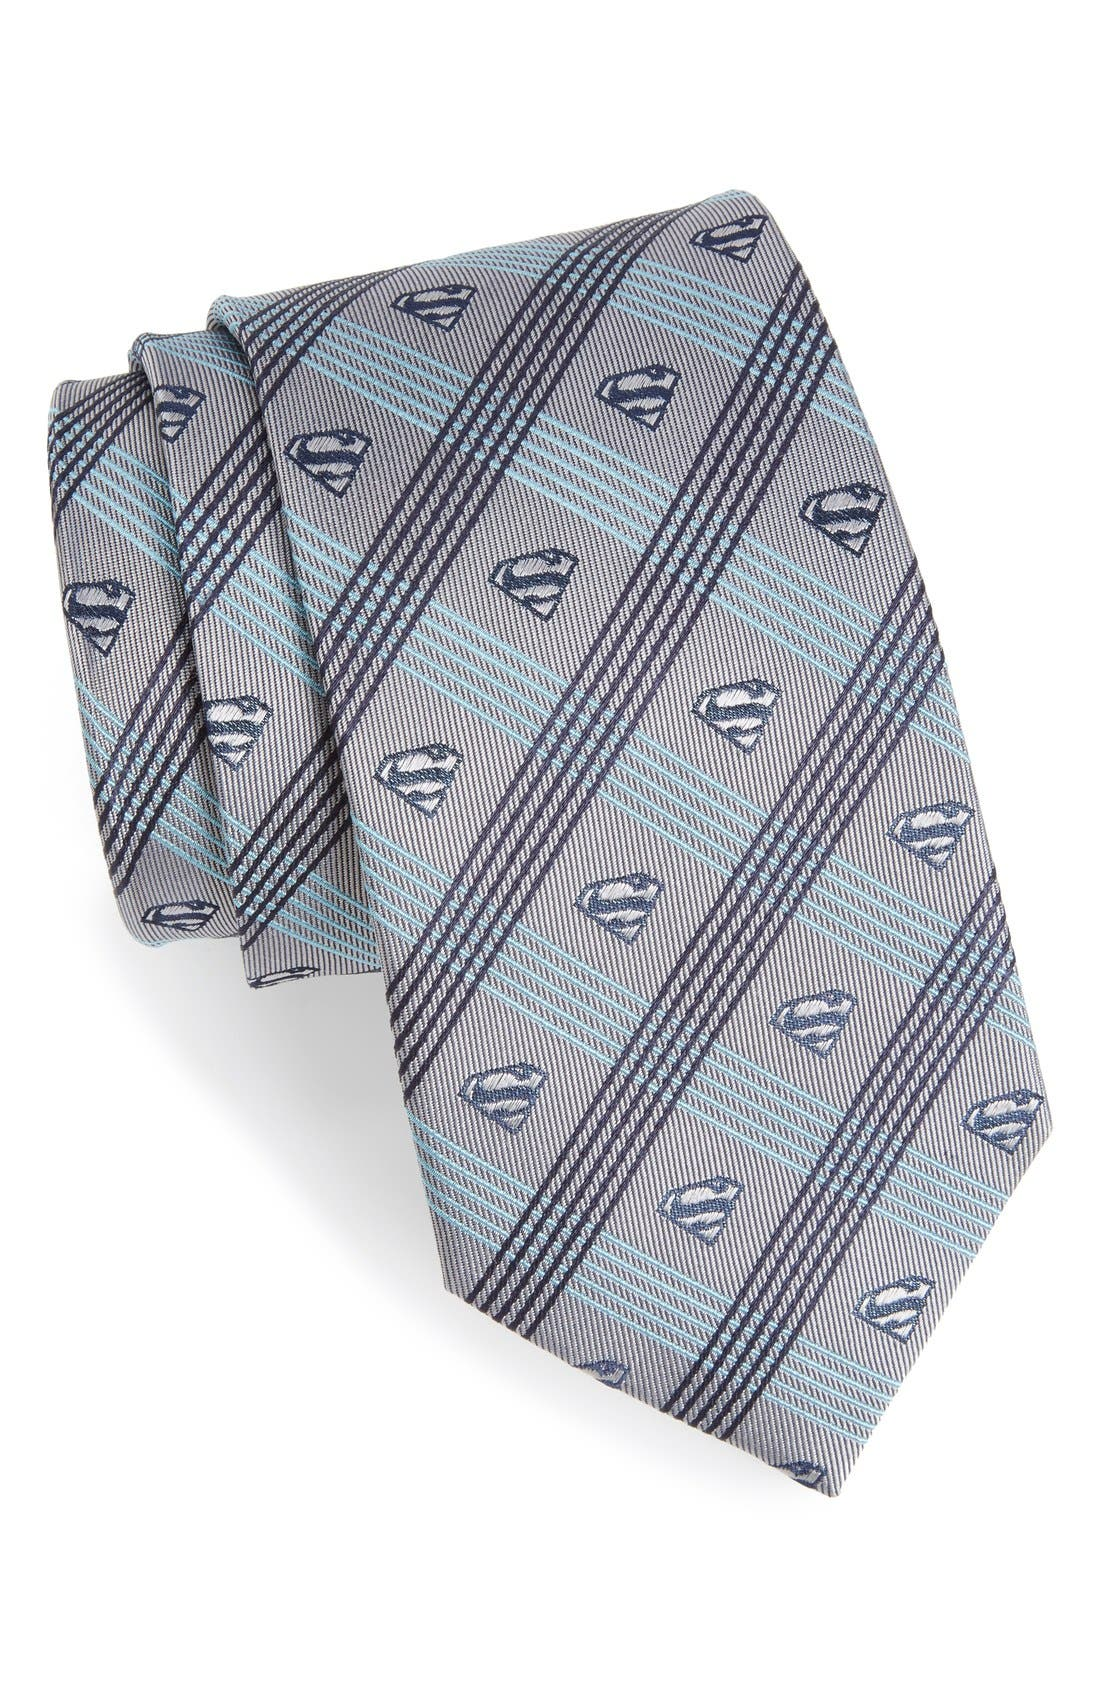 'Superman' Plaid Silk Tie,                             Main thumbnail 1, color,                             Grey